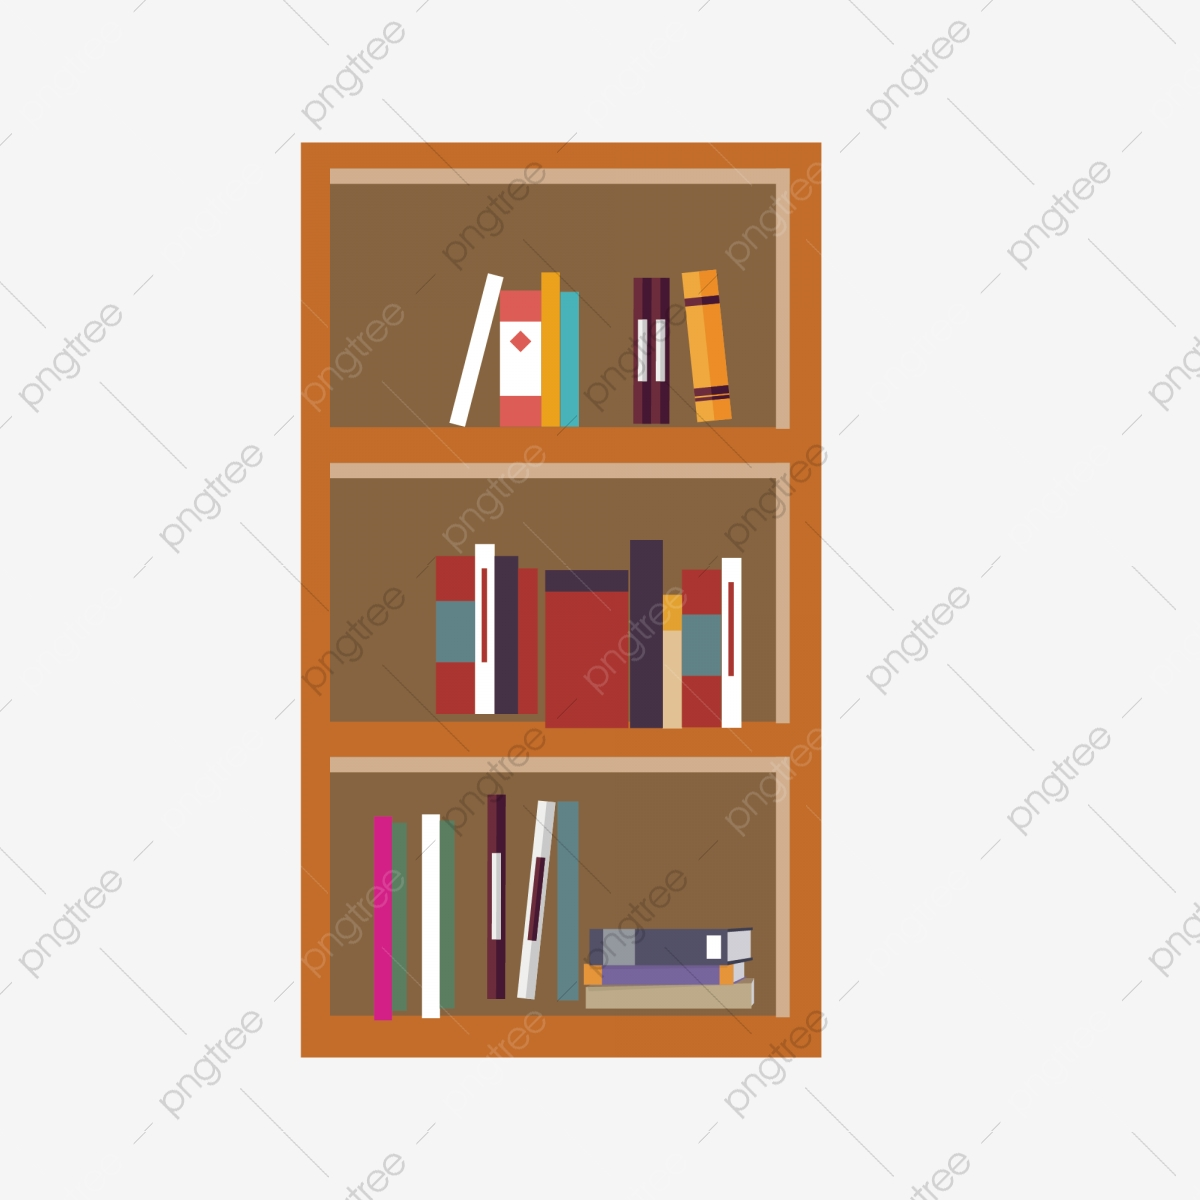 Bookshelf clipart simple. Cartoon ai material